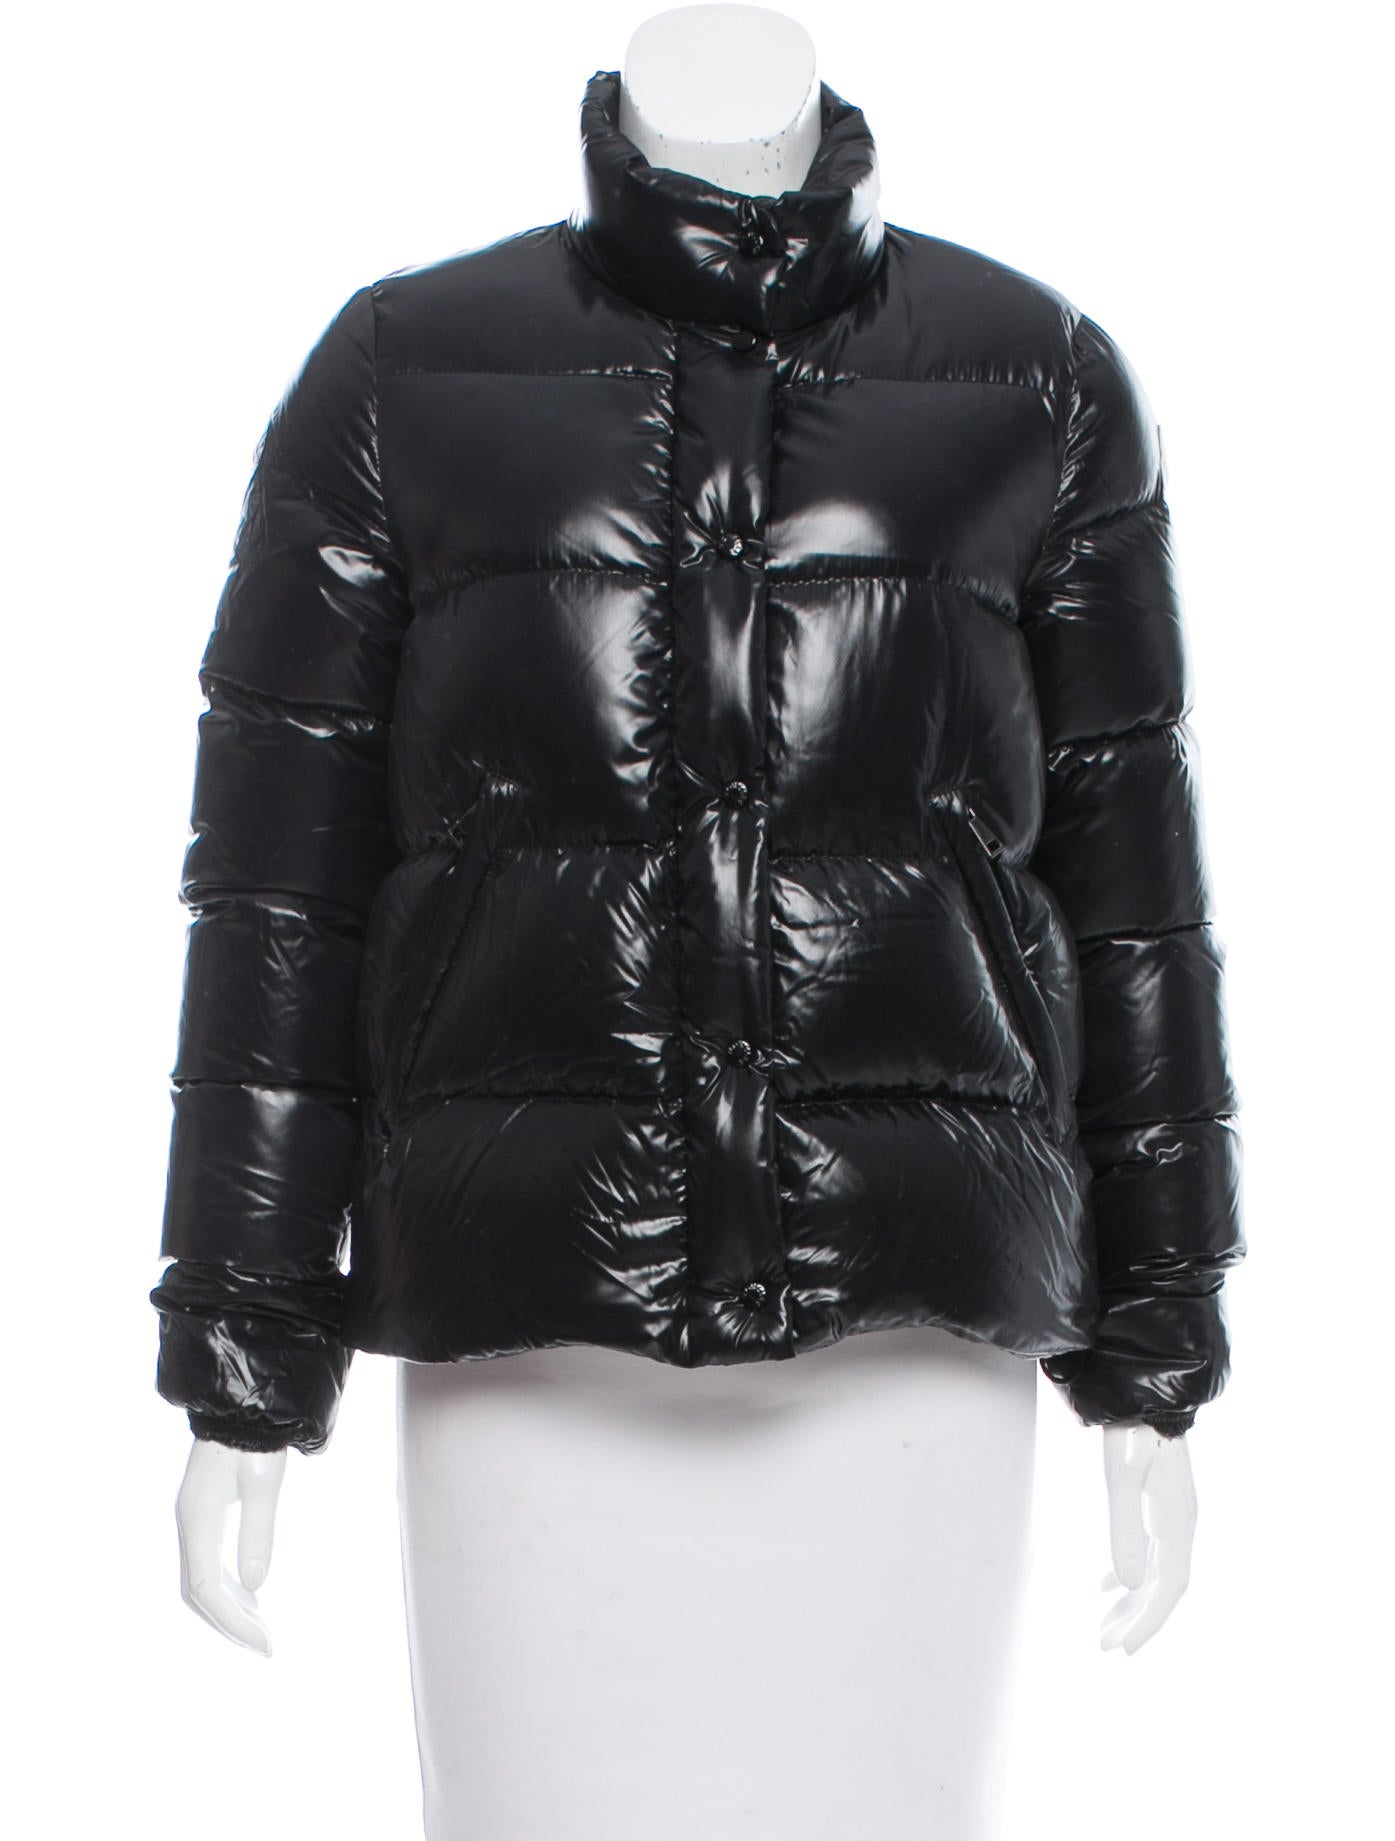 ba38f39a6afc Moncler Berthil Puffer Jacket - Clothing - MOC25551